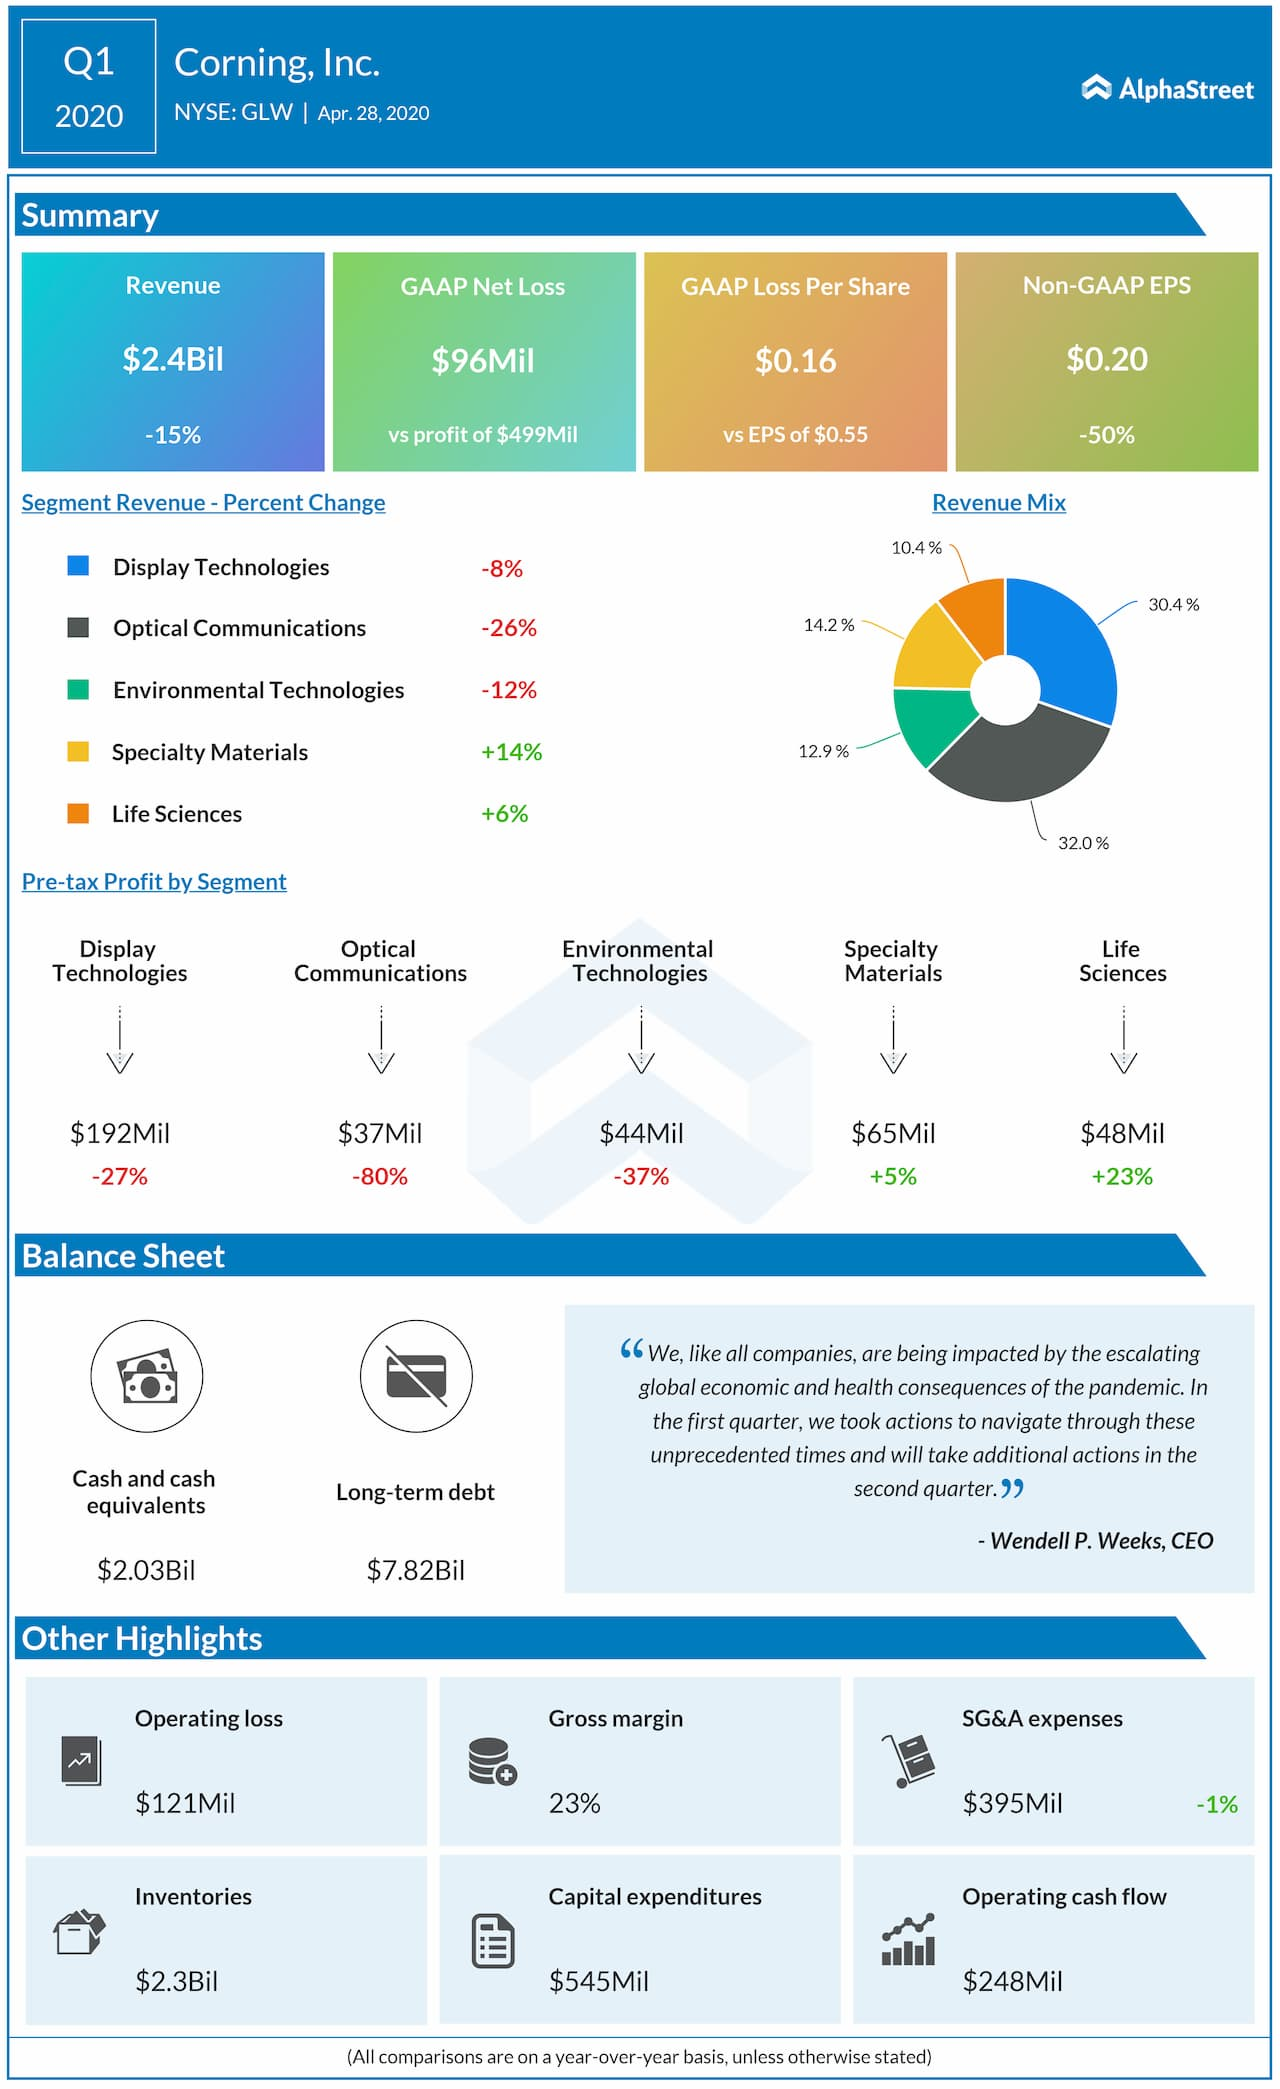 Corning (GLW) Q1 2020 earnings review